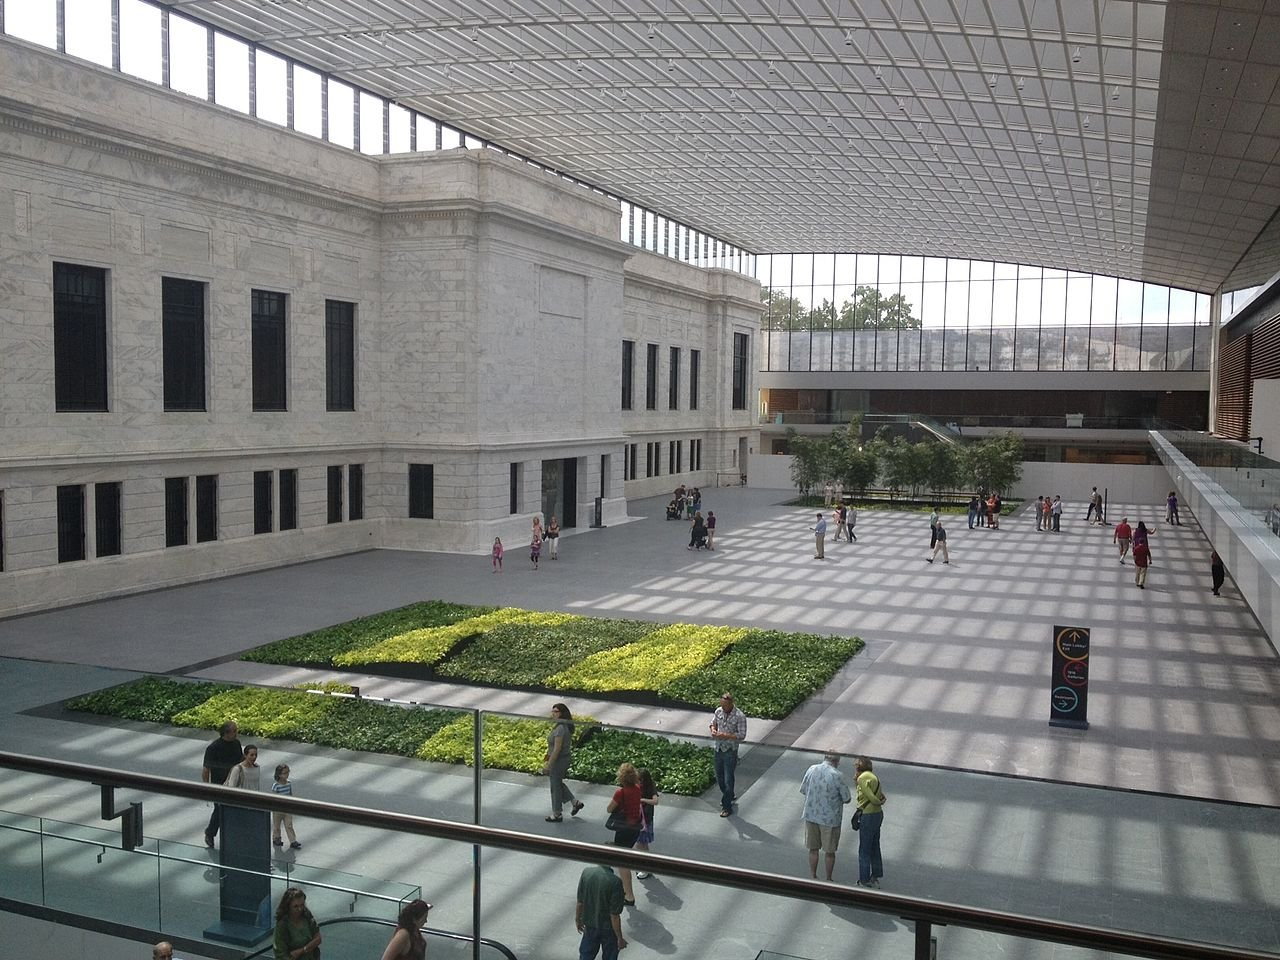 The atrium built in 2012 provides a shaded area over the space between the museum wings.